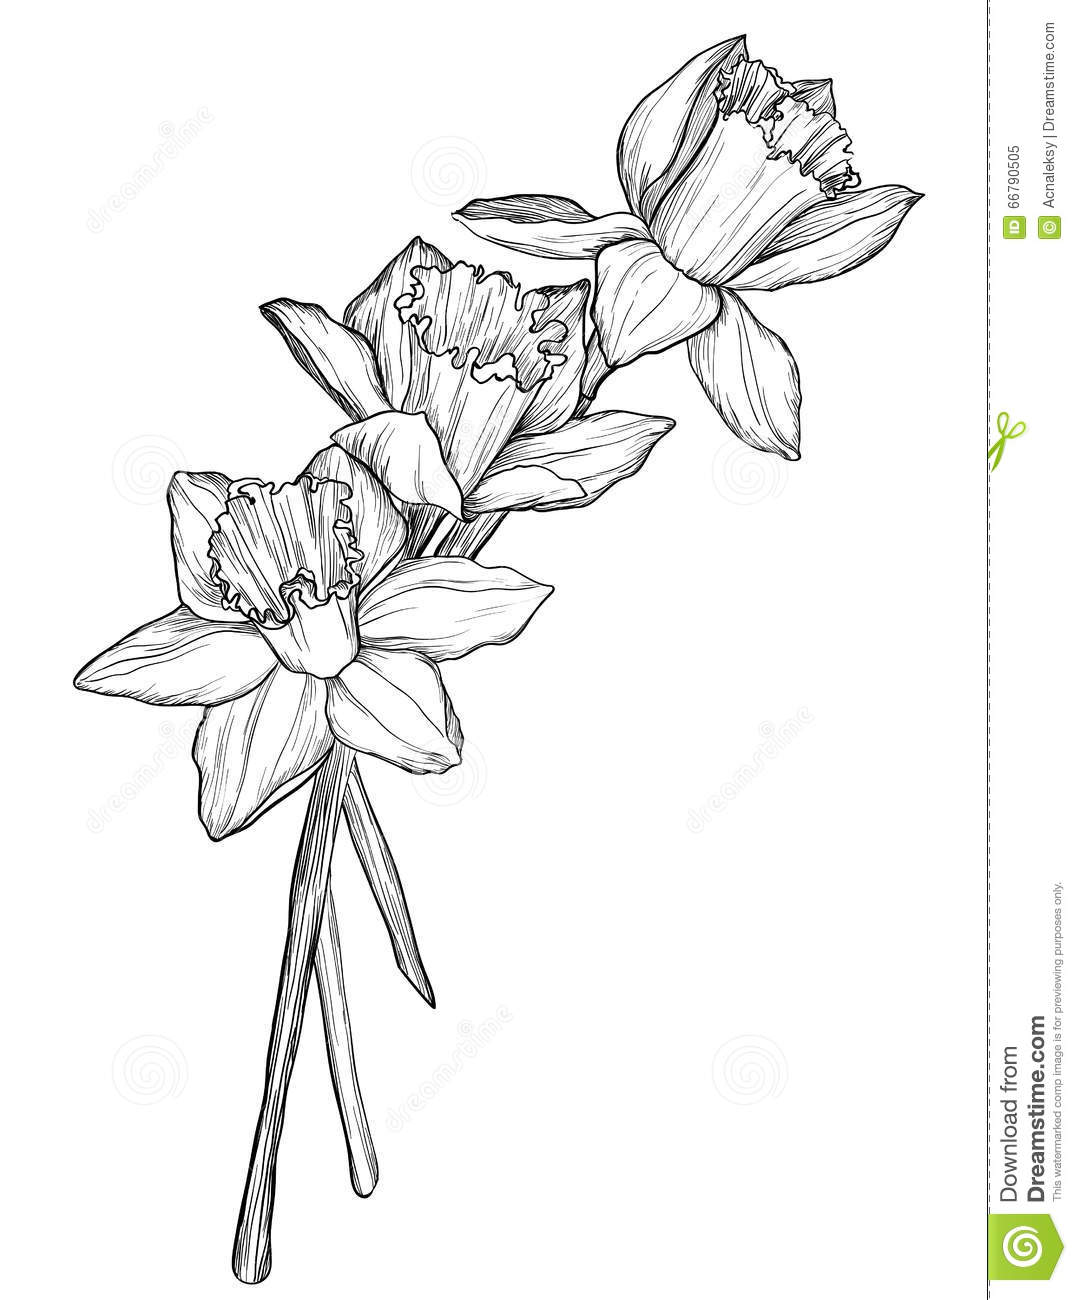 Line Drawing Daffodil : Sketch of narcissus flowers blossom stock vector